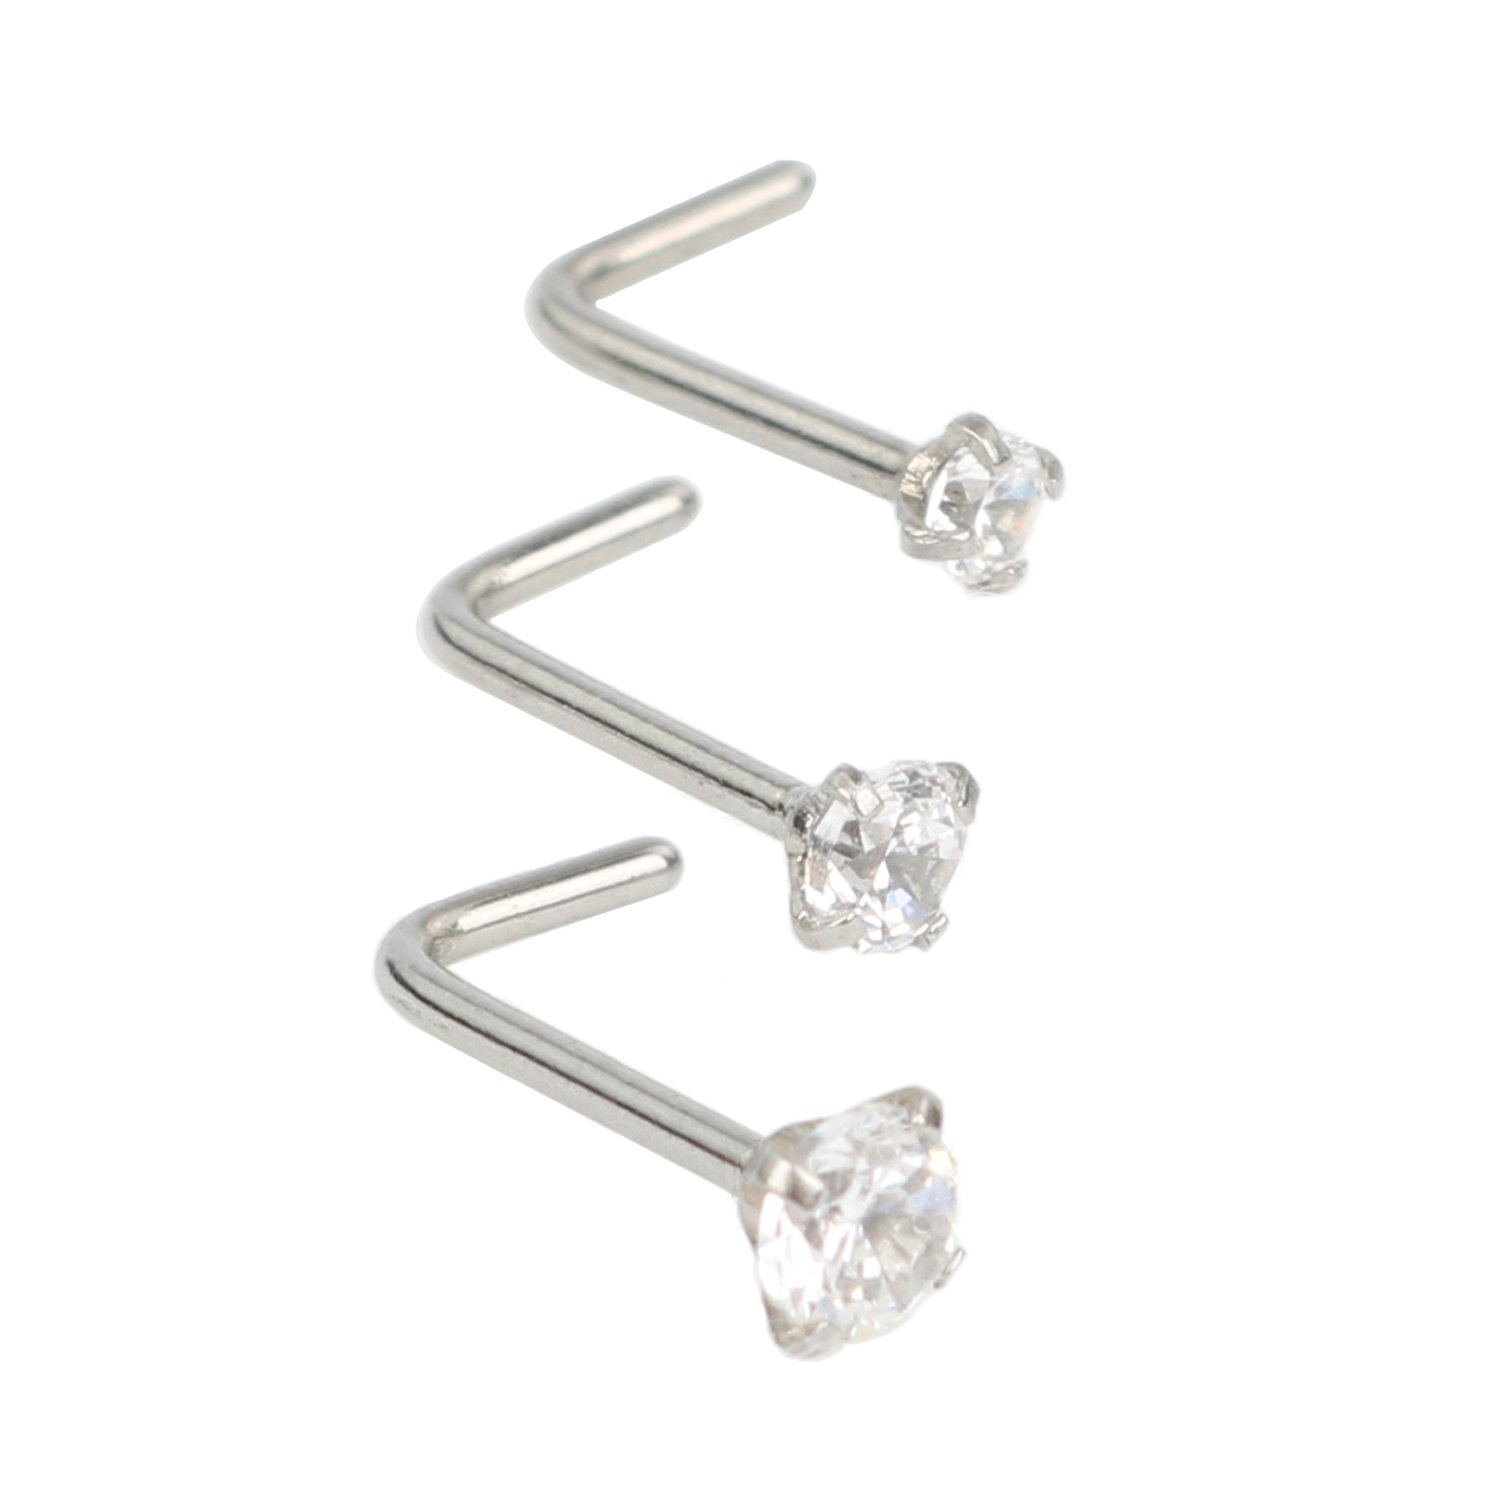 1 Sets 3 Pcs White Anti-allergy Drilling Insert Zircon Round Heart Star Shaped Curved Nose Rings Stainless Steel Nose Studs Screw Piercing Rings for Body Jewelry Piercing Fashion